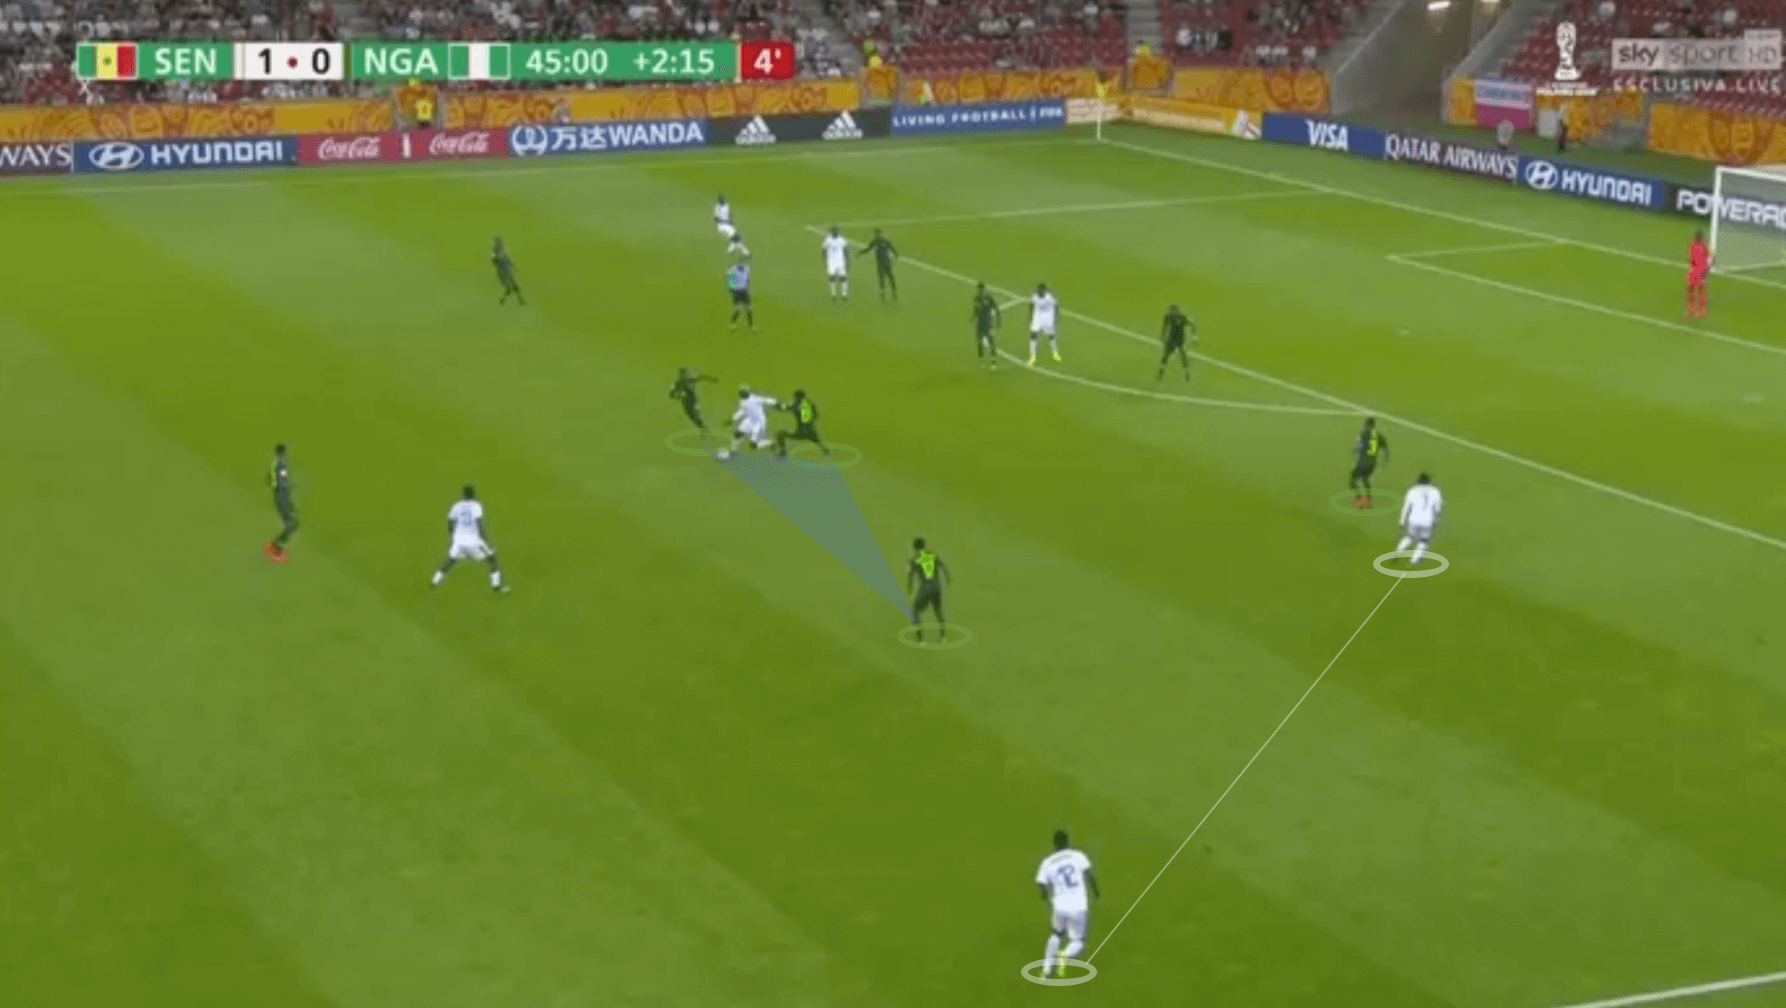 FIFA U20s World Cup 2019 Tactical Analysis: Dion Lopy at Senegal